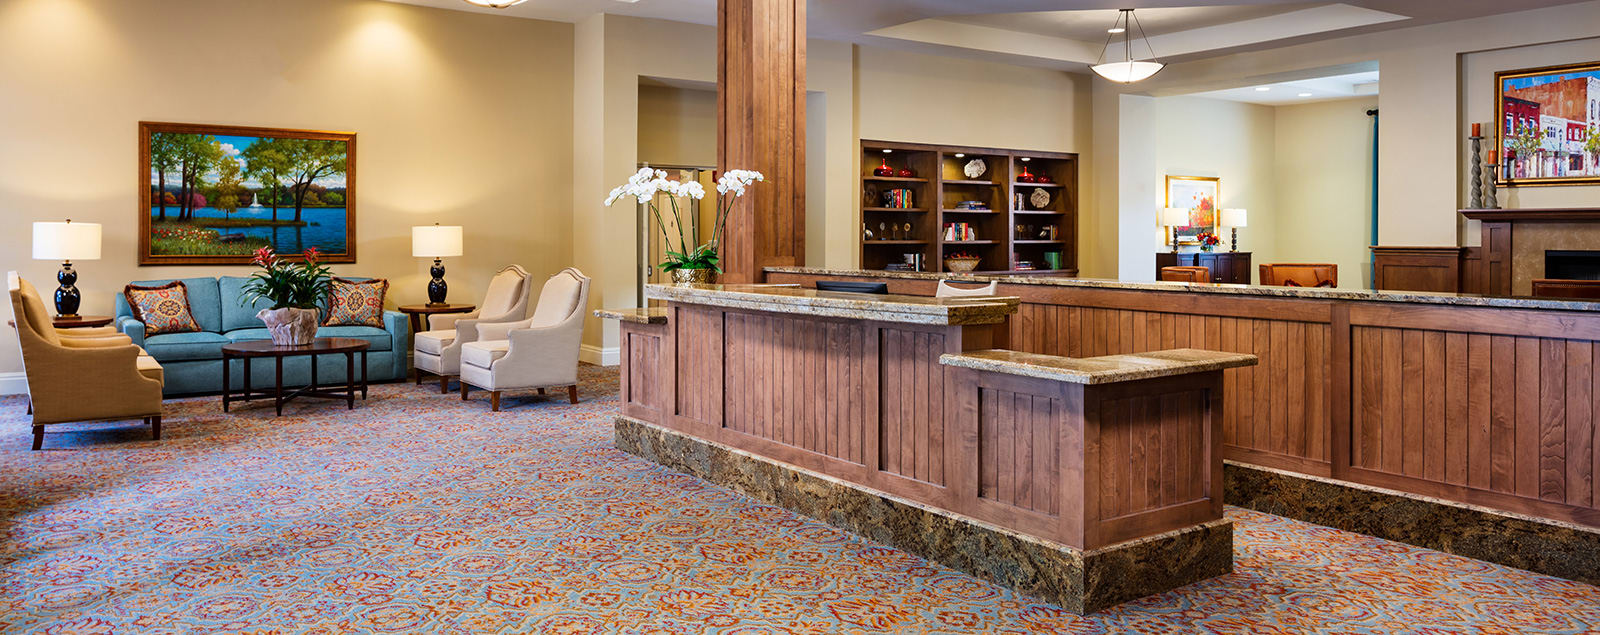 Schedule a senior living tour in McKinney